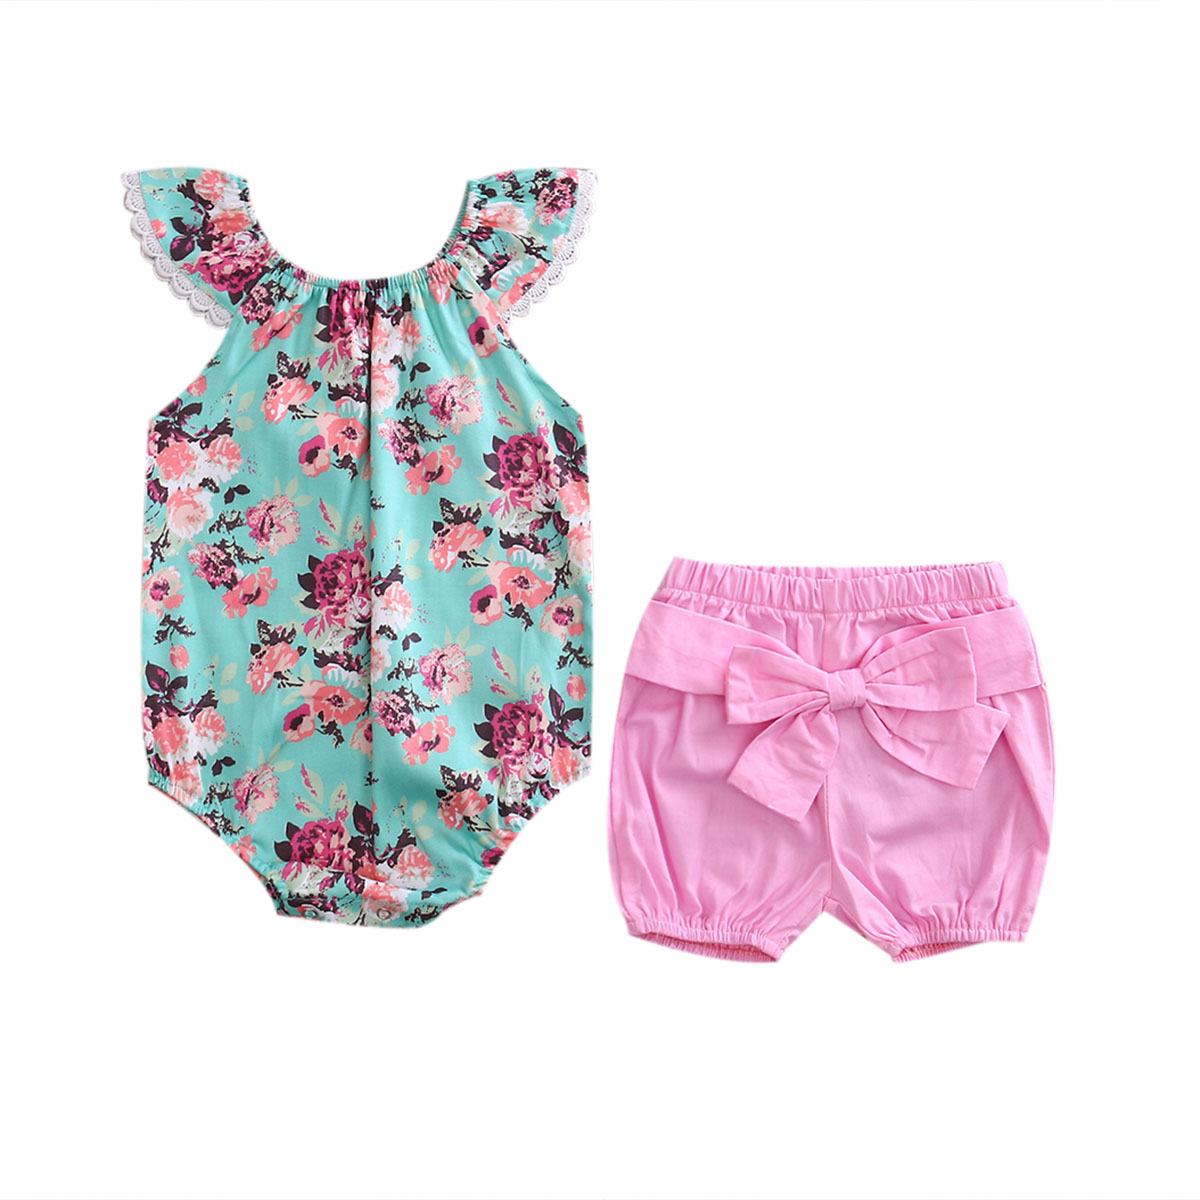 2017 Summer Cute Newborn Toddle Kids Baby Girls Clothes Set Lace Ruffled Floral Baby Romper Bodysuit+Bow Shorts 2PCS Outfits